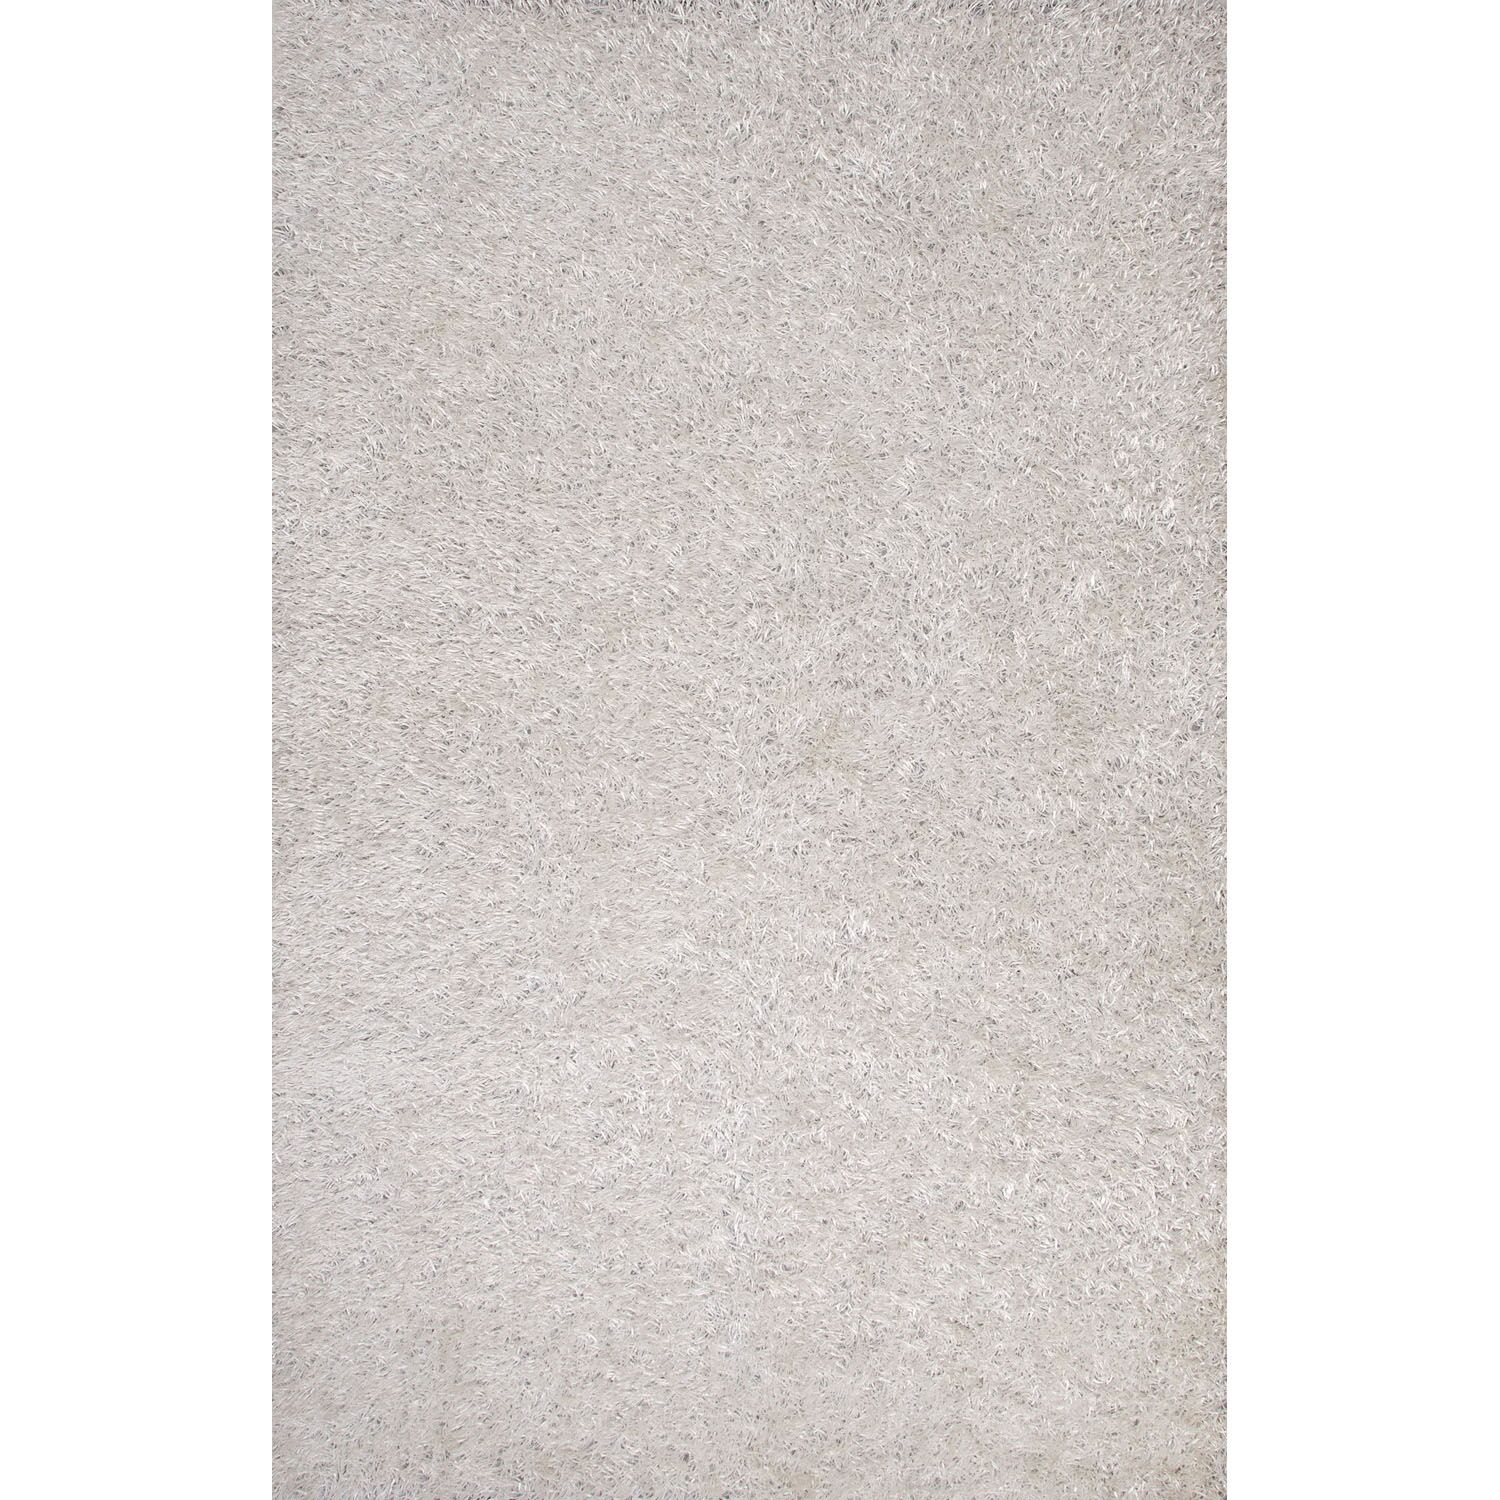 Woodside Gray Solid Area Rug Rug Size: Rectangle 3'6